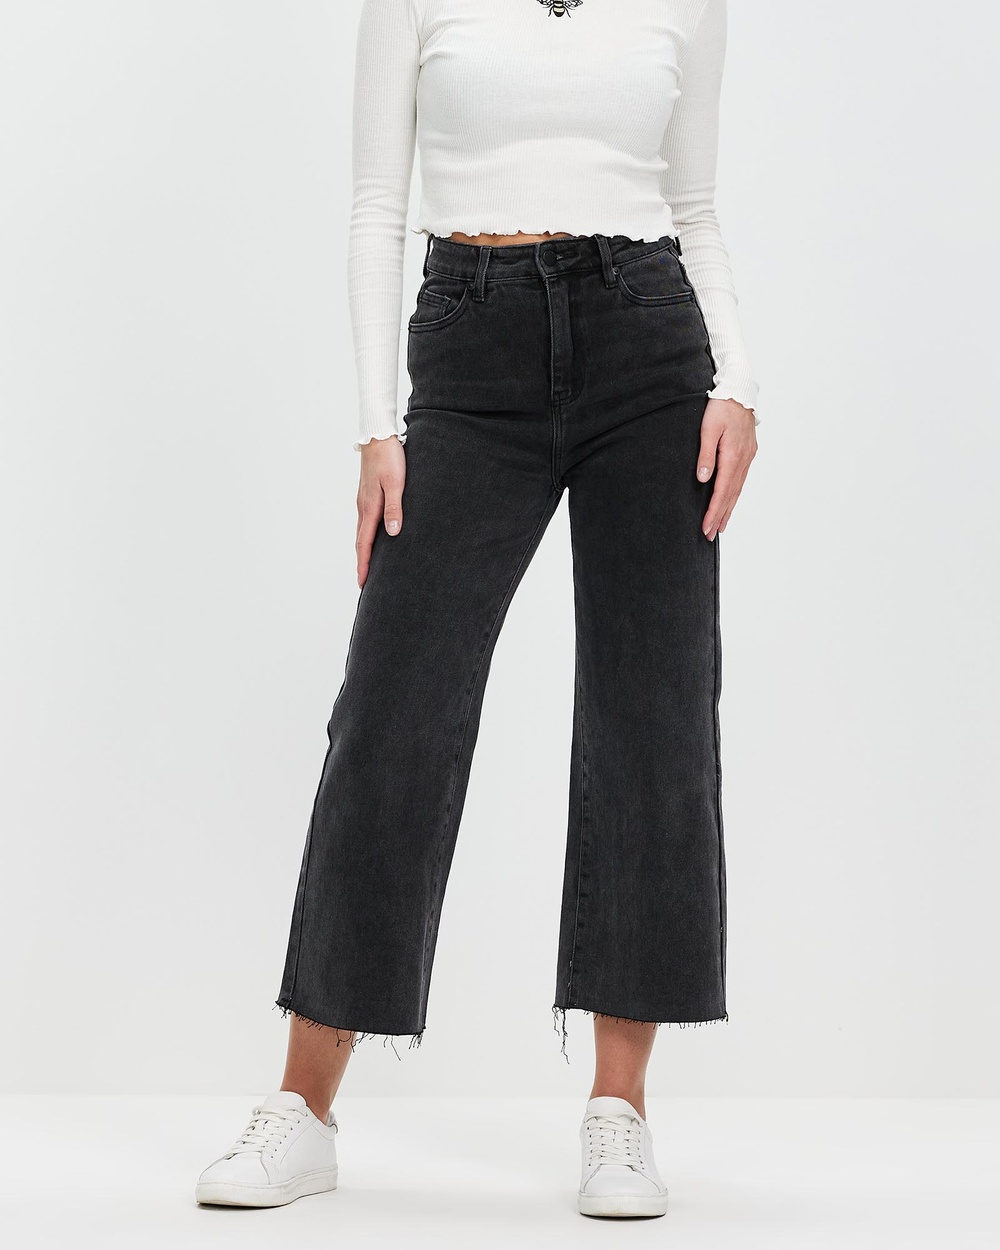 All About Eve Charlie High Rise Wide Leg Jeans Crop Faded Black